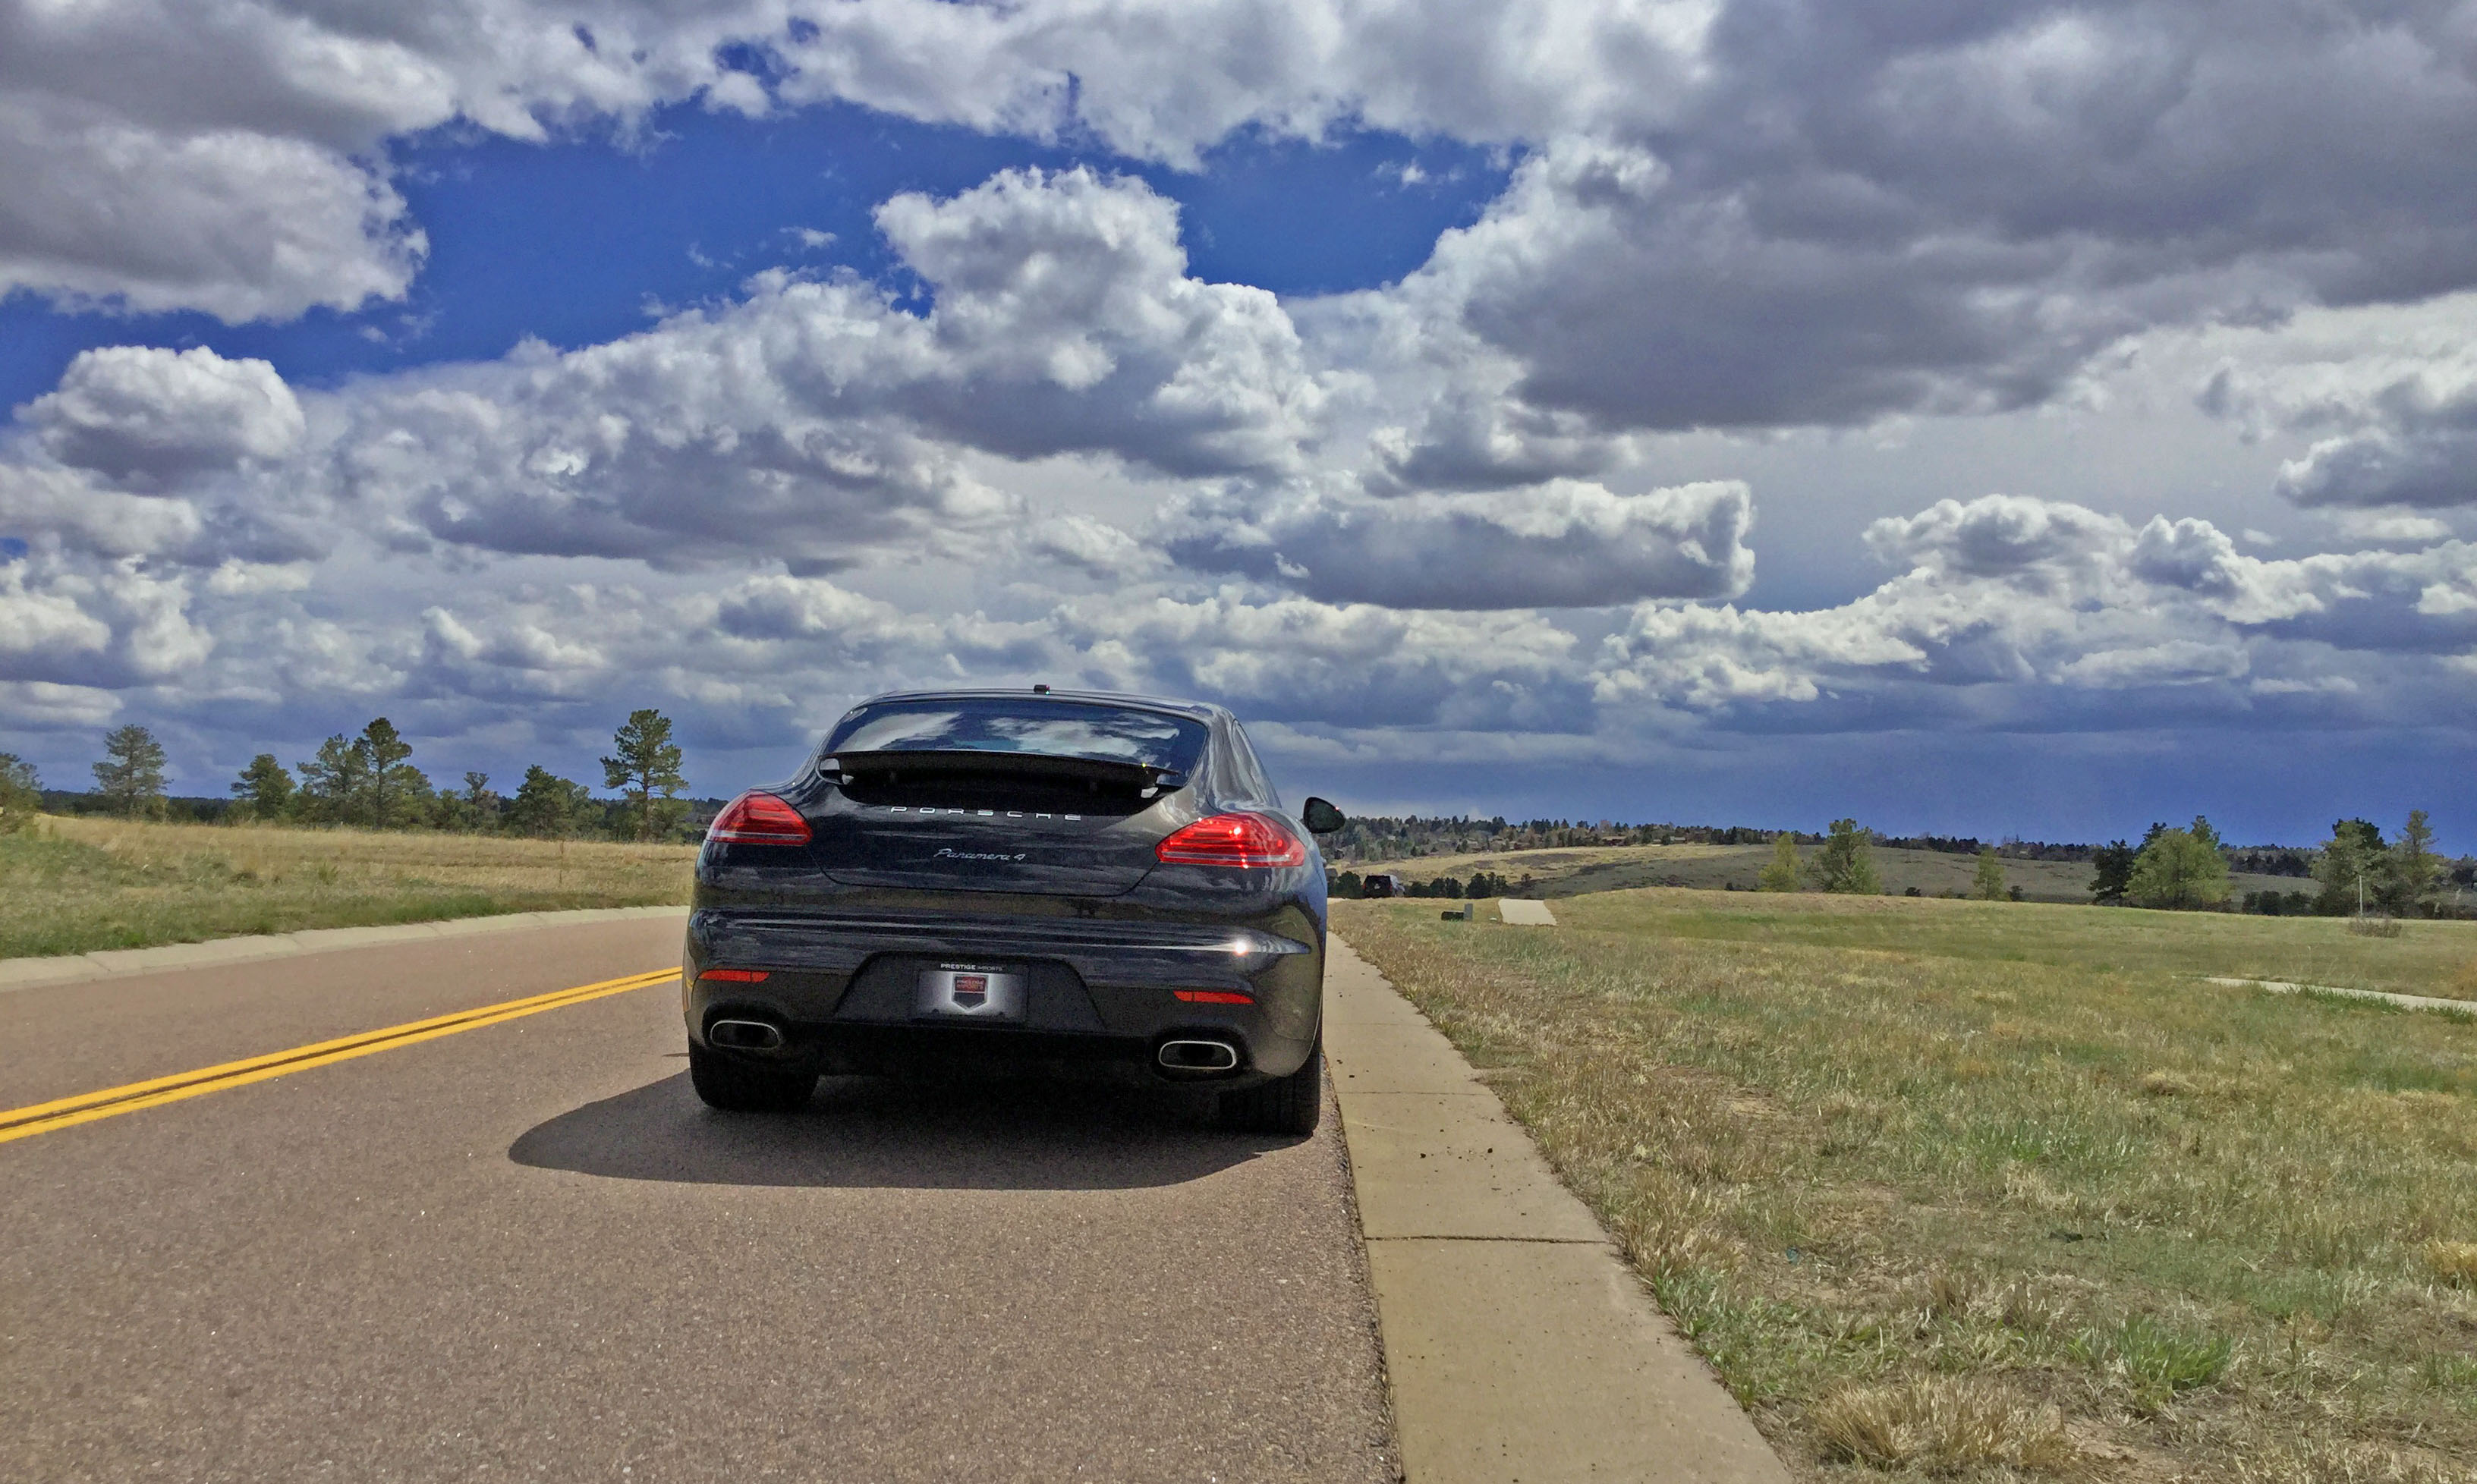 The 2016 Porsche Panamera 4 sits on a road near the Colorado Golf Club in Parker, CO